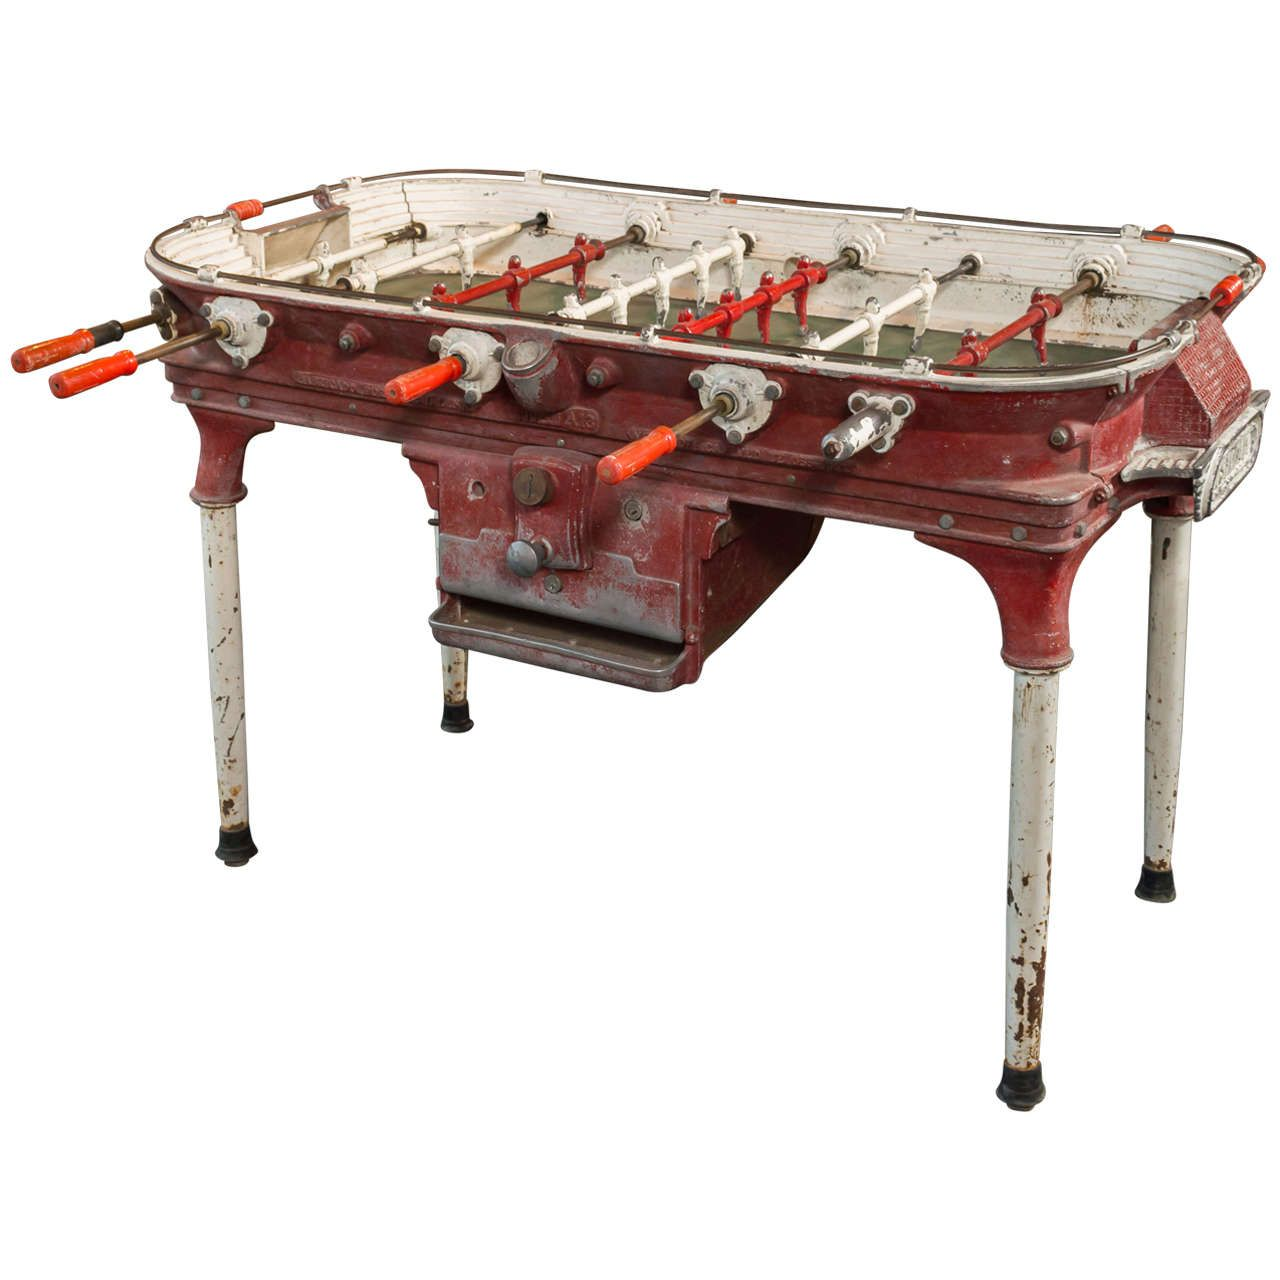 Vintage Cast Aluminum Foosball Table Games Lets Play Pinterest - Antique foosball table for sale